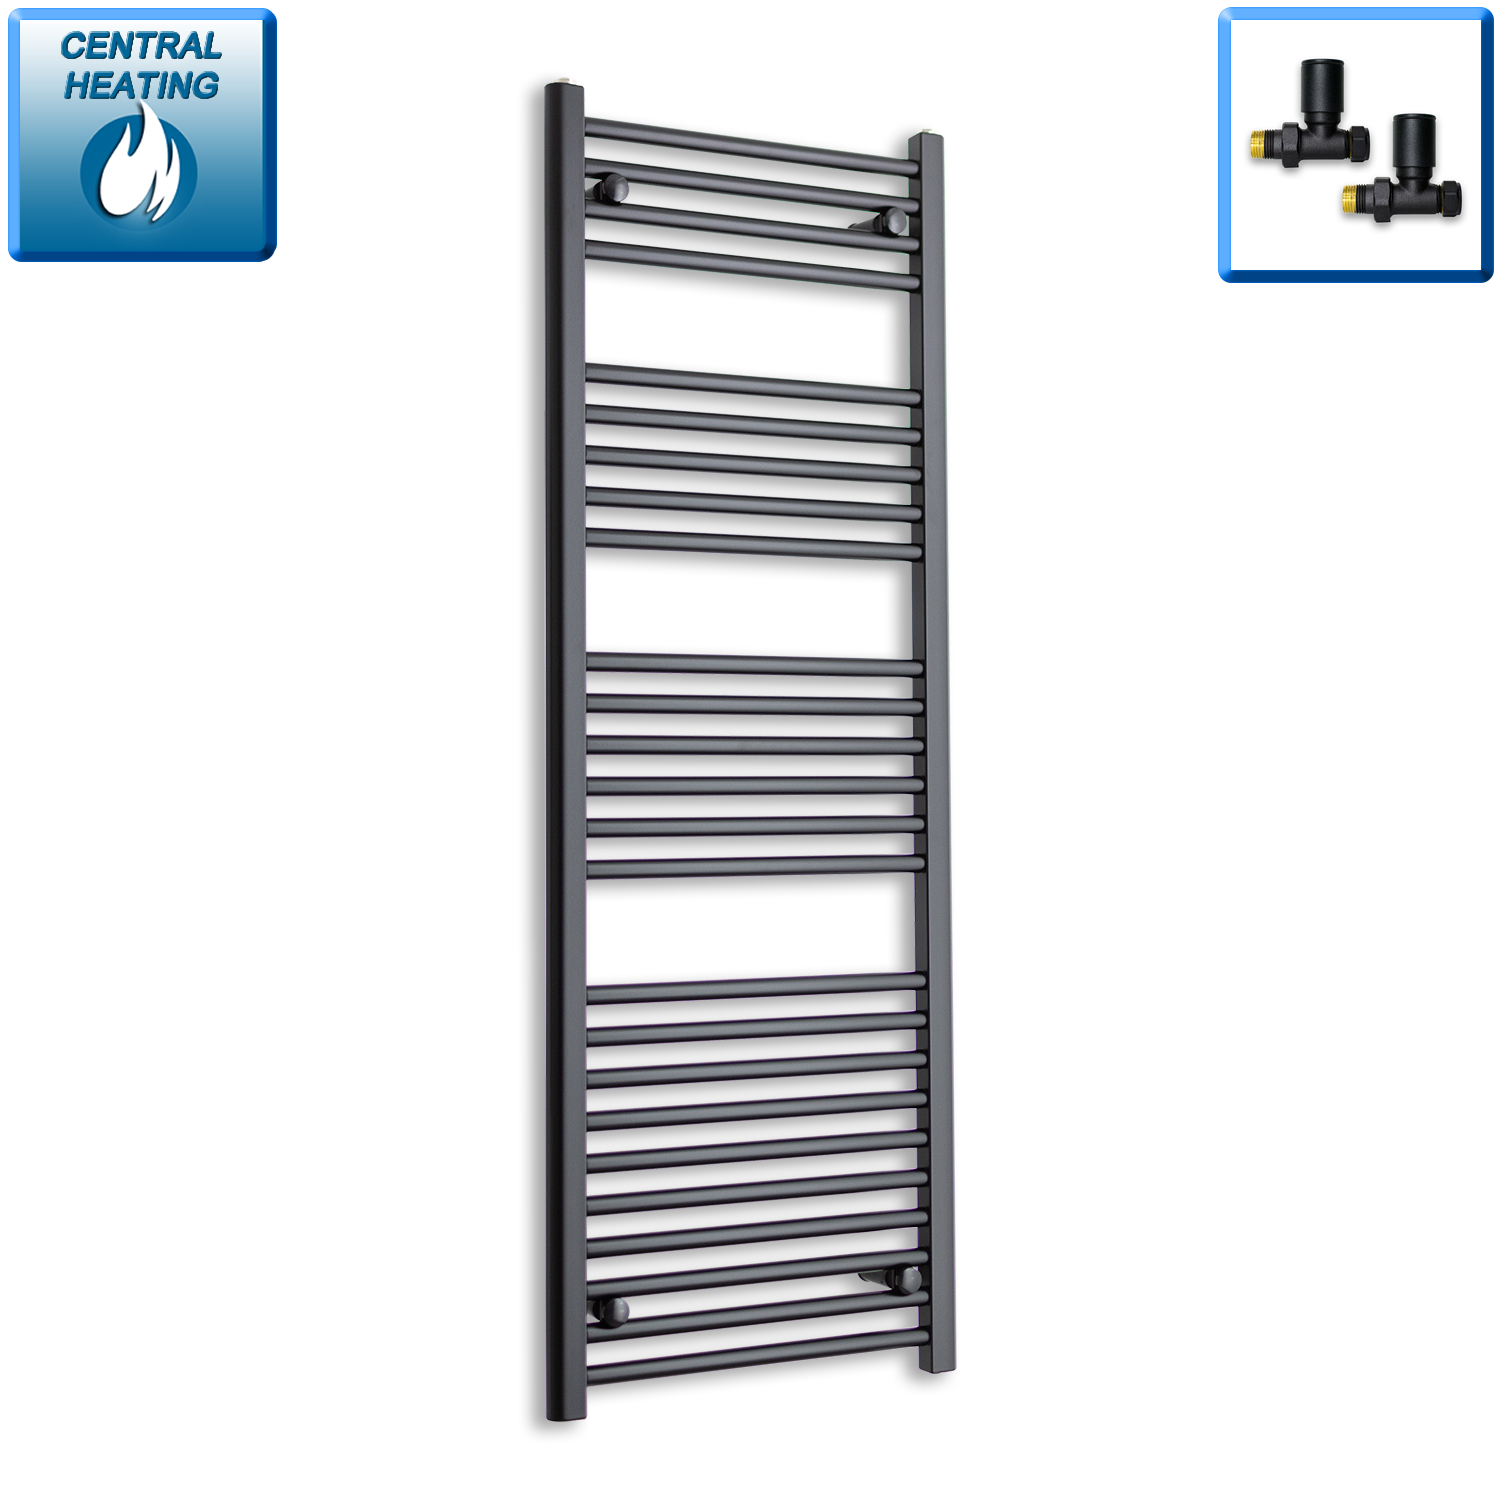 500mm Wide 1400mm High Black Towel Rail Radiator With Straight Valve